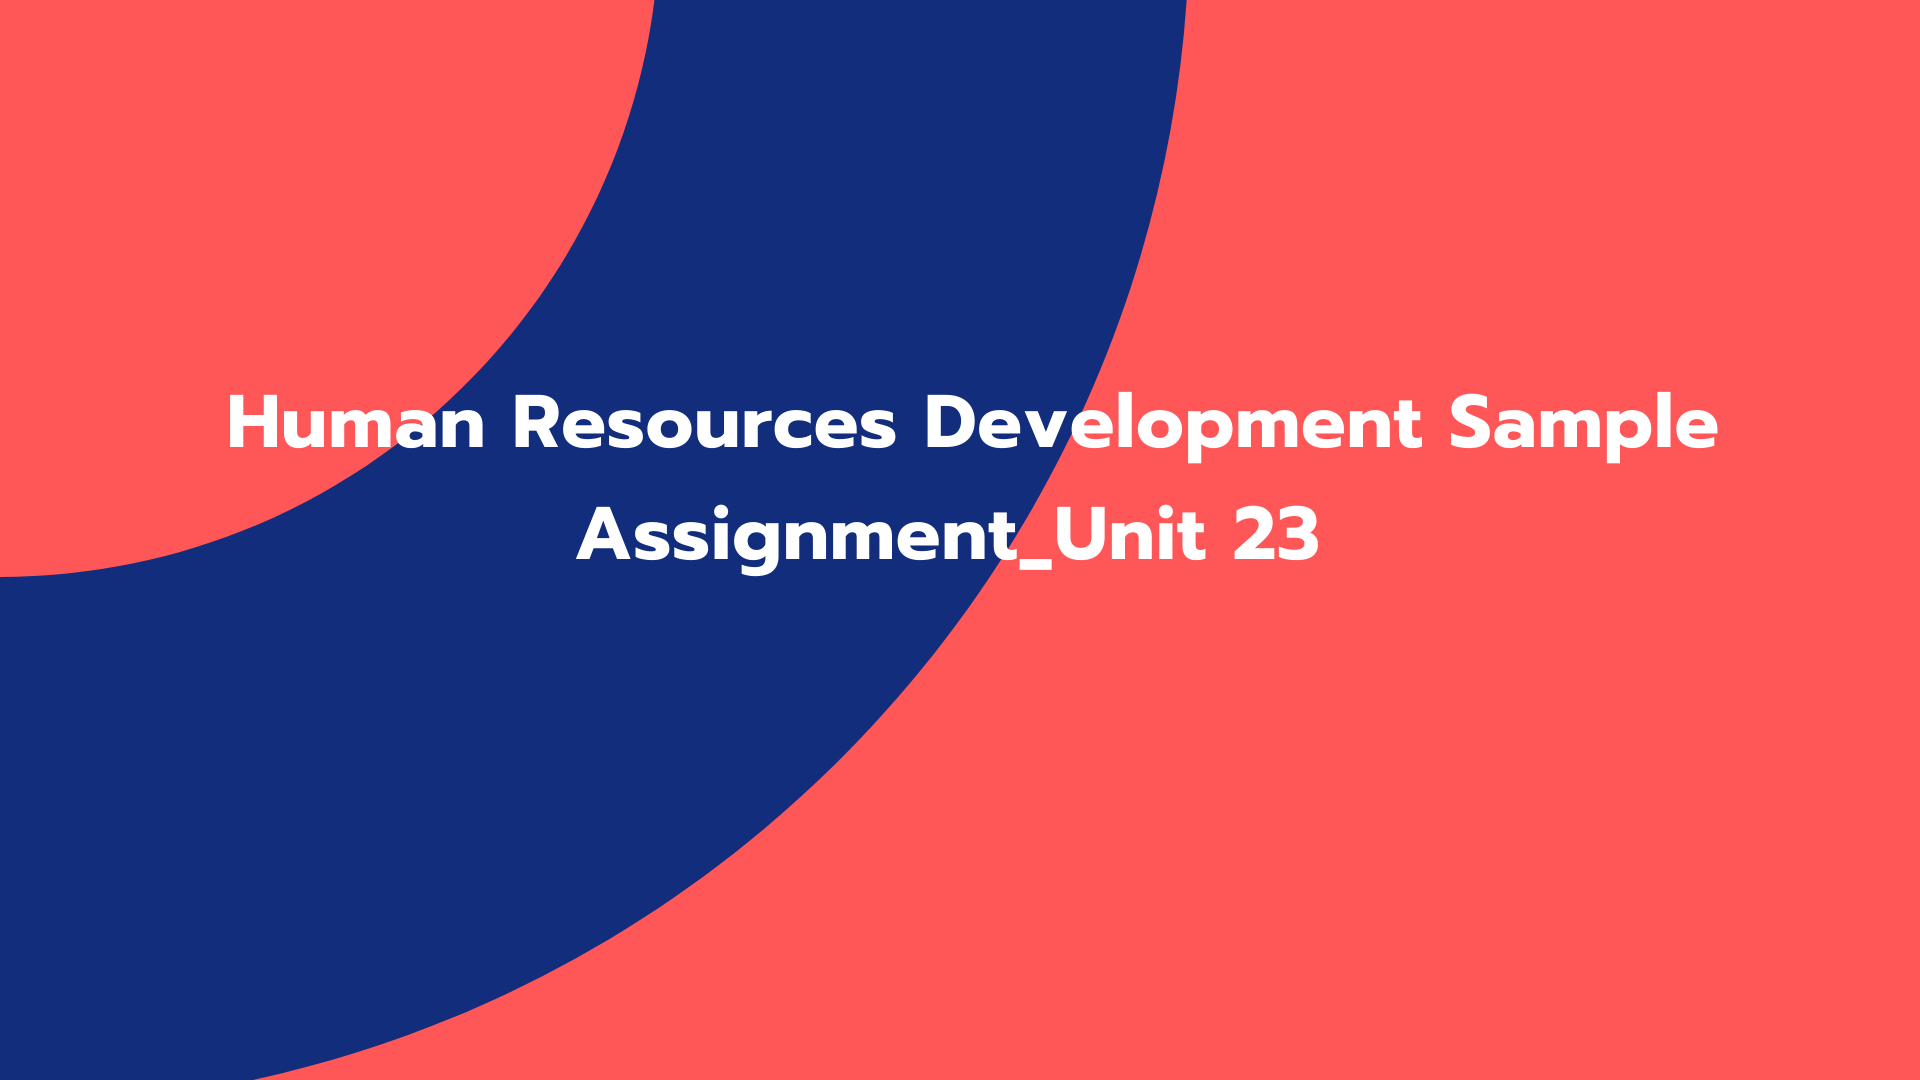 Human Resource Development Assignment